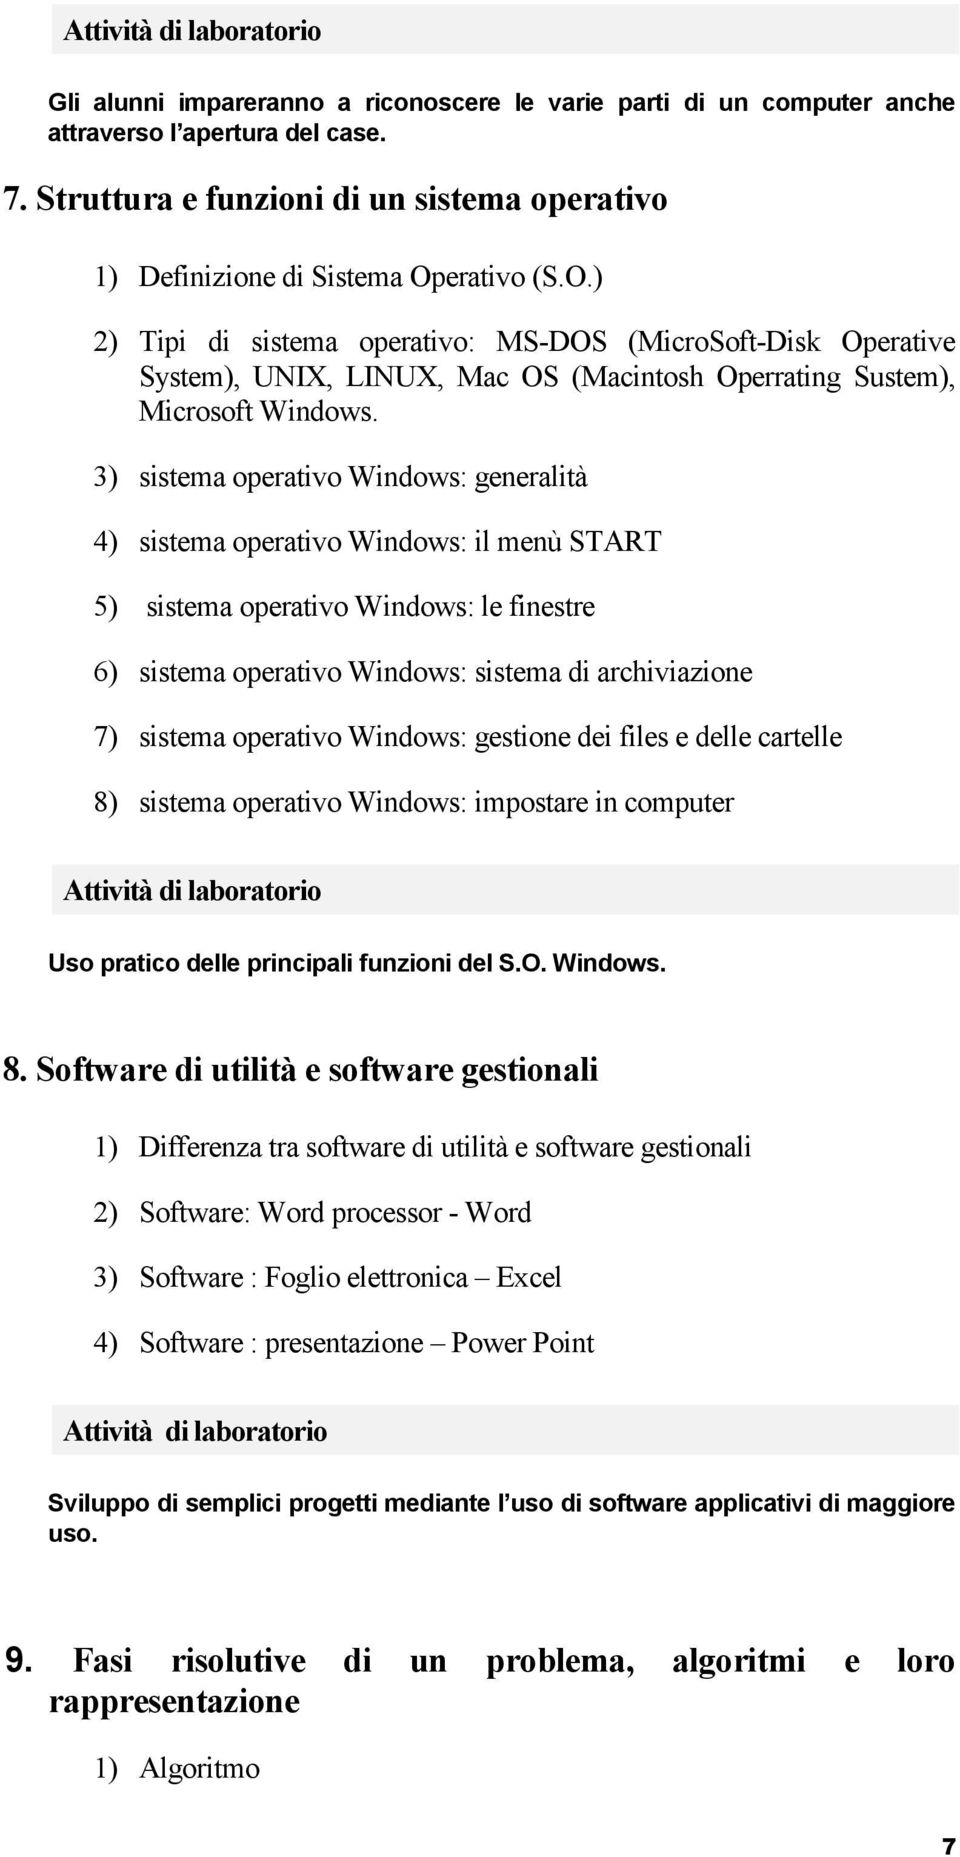 3) sistema operativo Windows: generalità 4) sistema operativo Windows: il menù START 5) sistema operativo Windows: le finestre 6) sistema operativo Windows: sistema di archiviazione 7) sistema